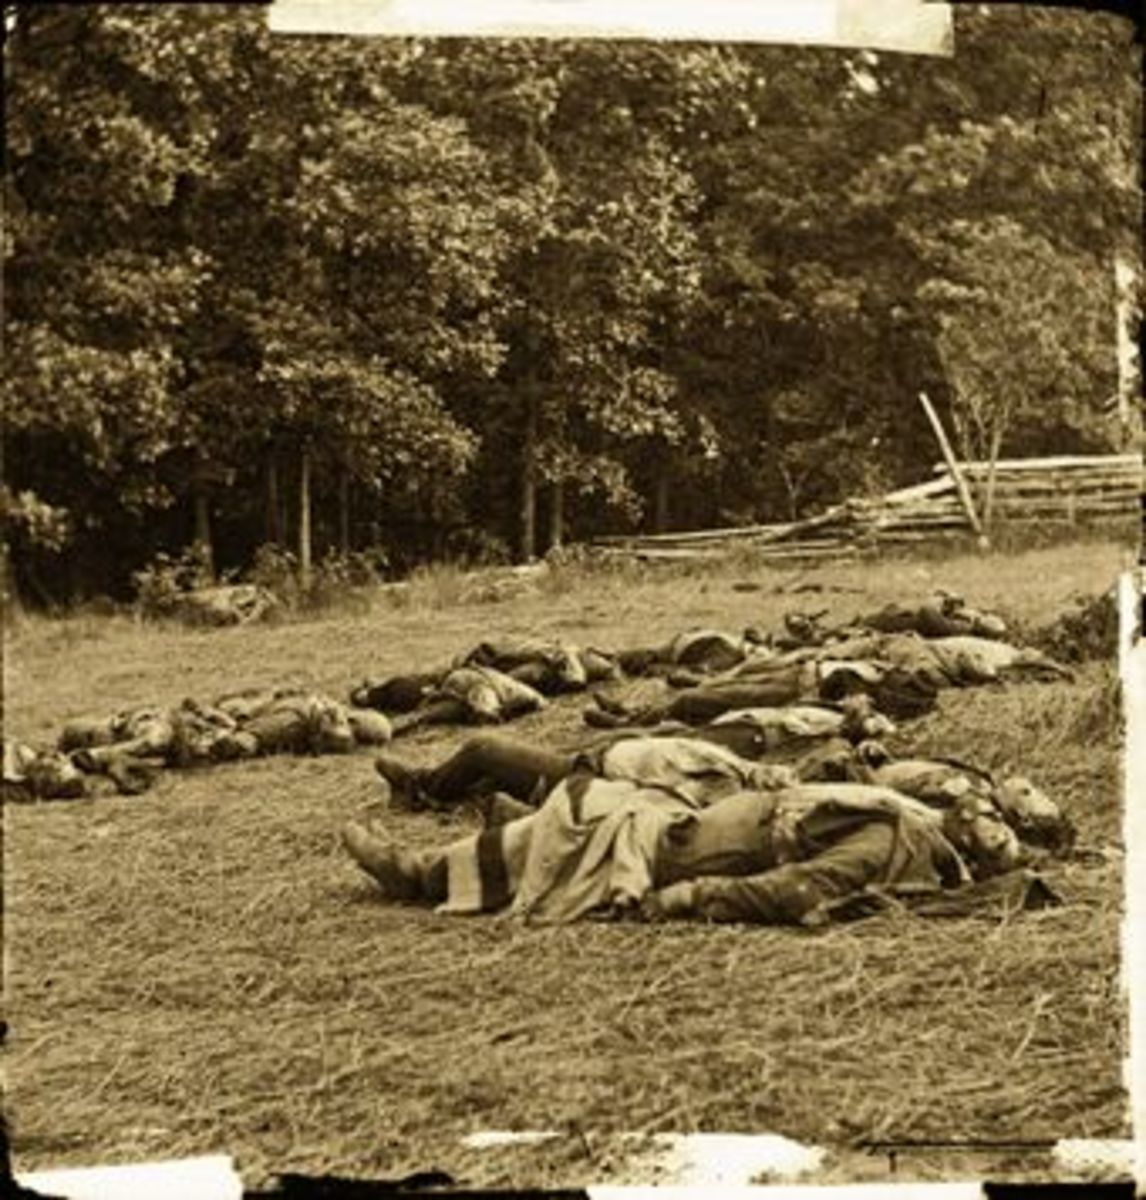 Great Ghosts of Gettysburg Between the first and the third of July, 1863, more blood was shed in a formerly little-known Adams County farm community than at any battle in history. The deaths on the battlefield at Gettysburg numbered 7,500, and probab